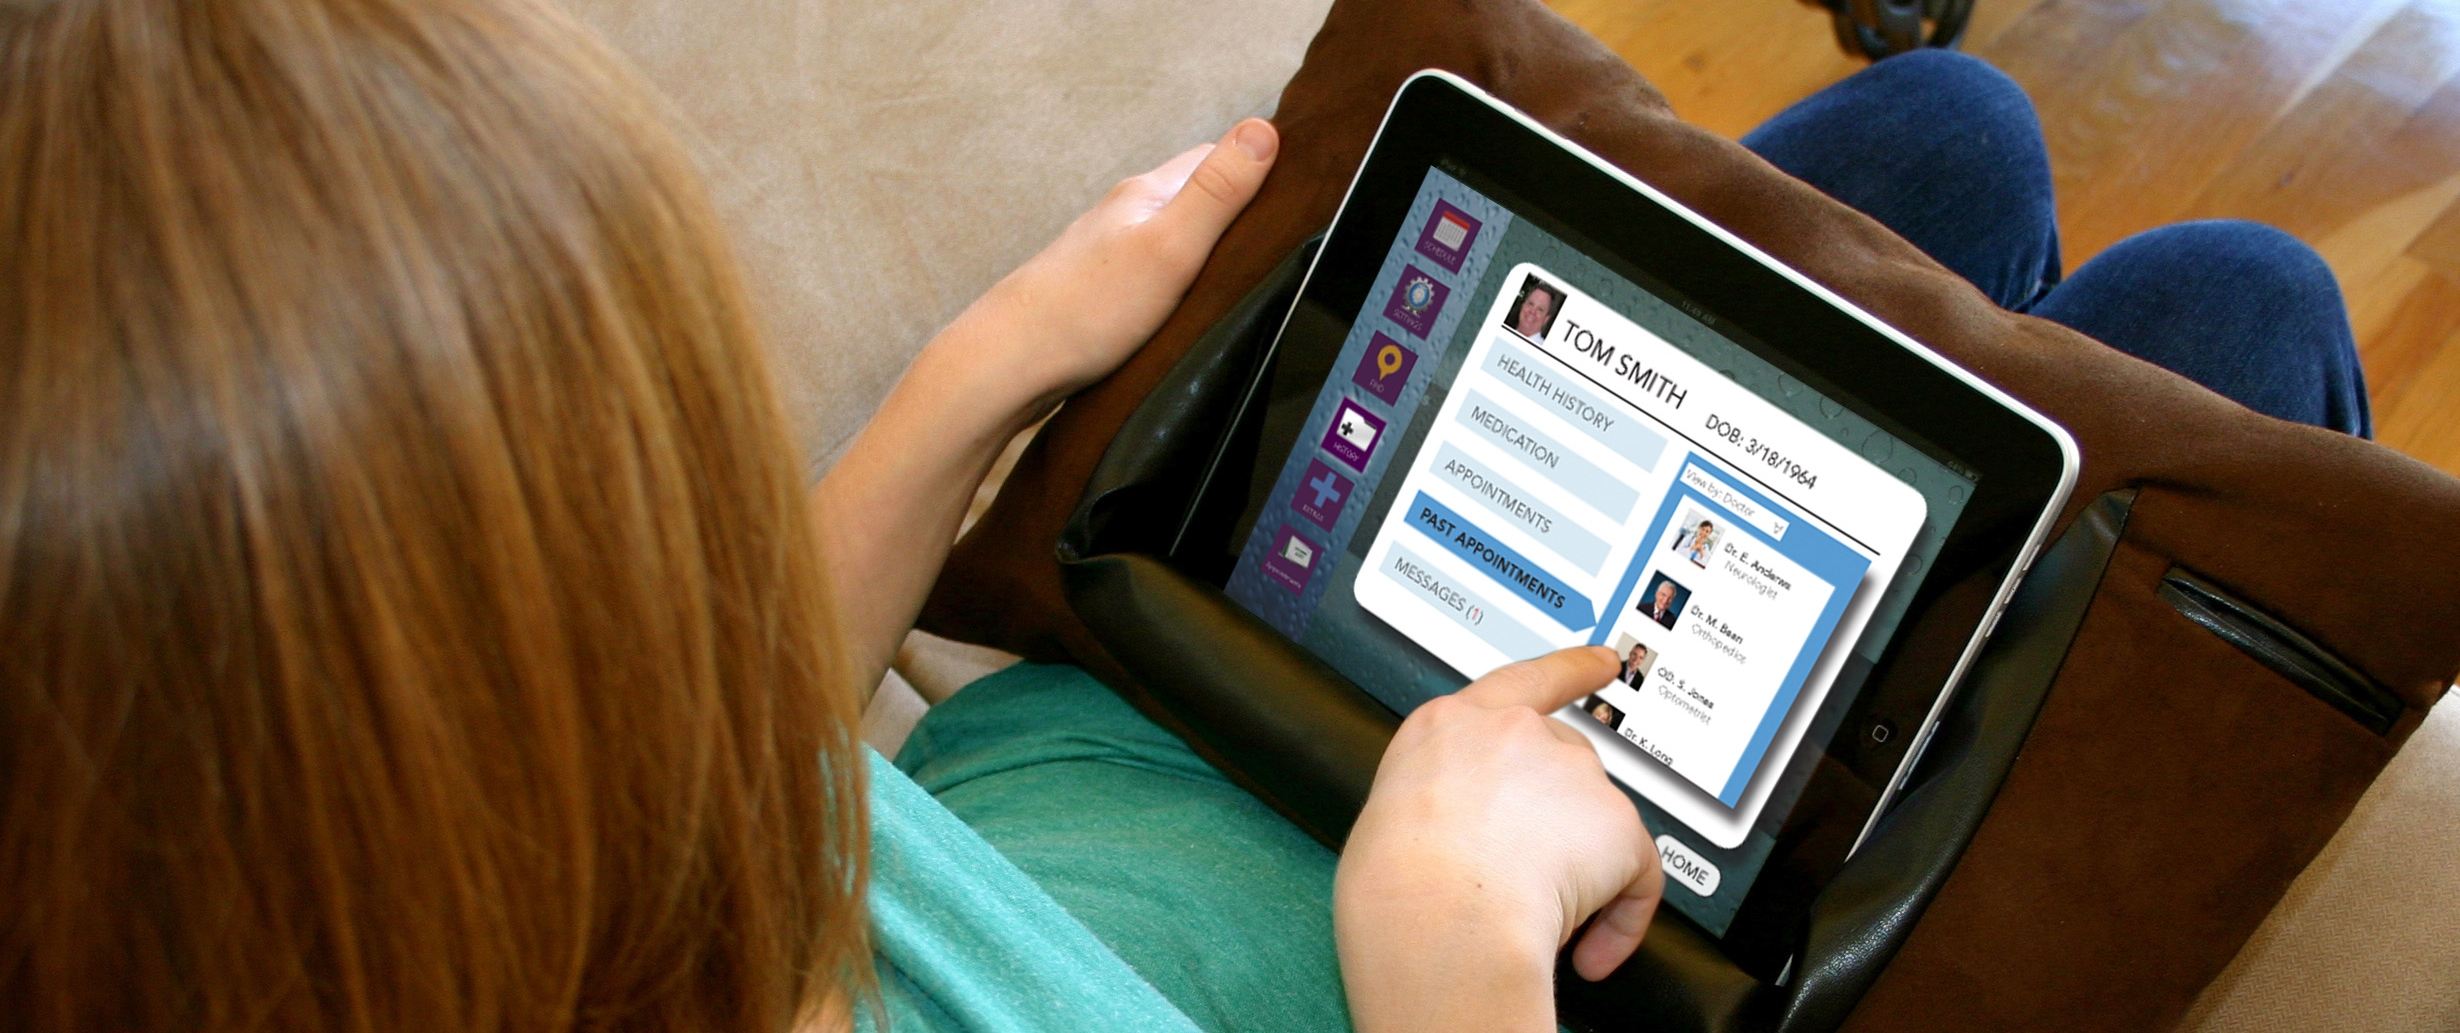 Compassion_Project-iPad_in_Use